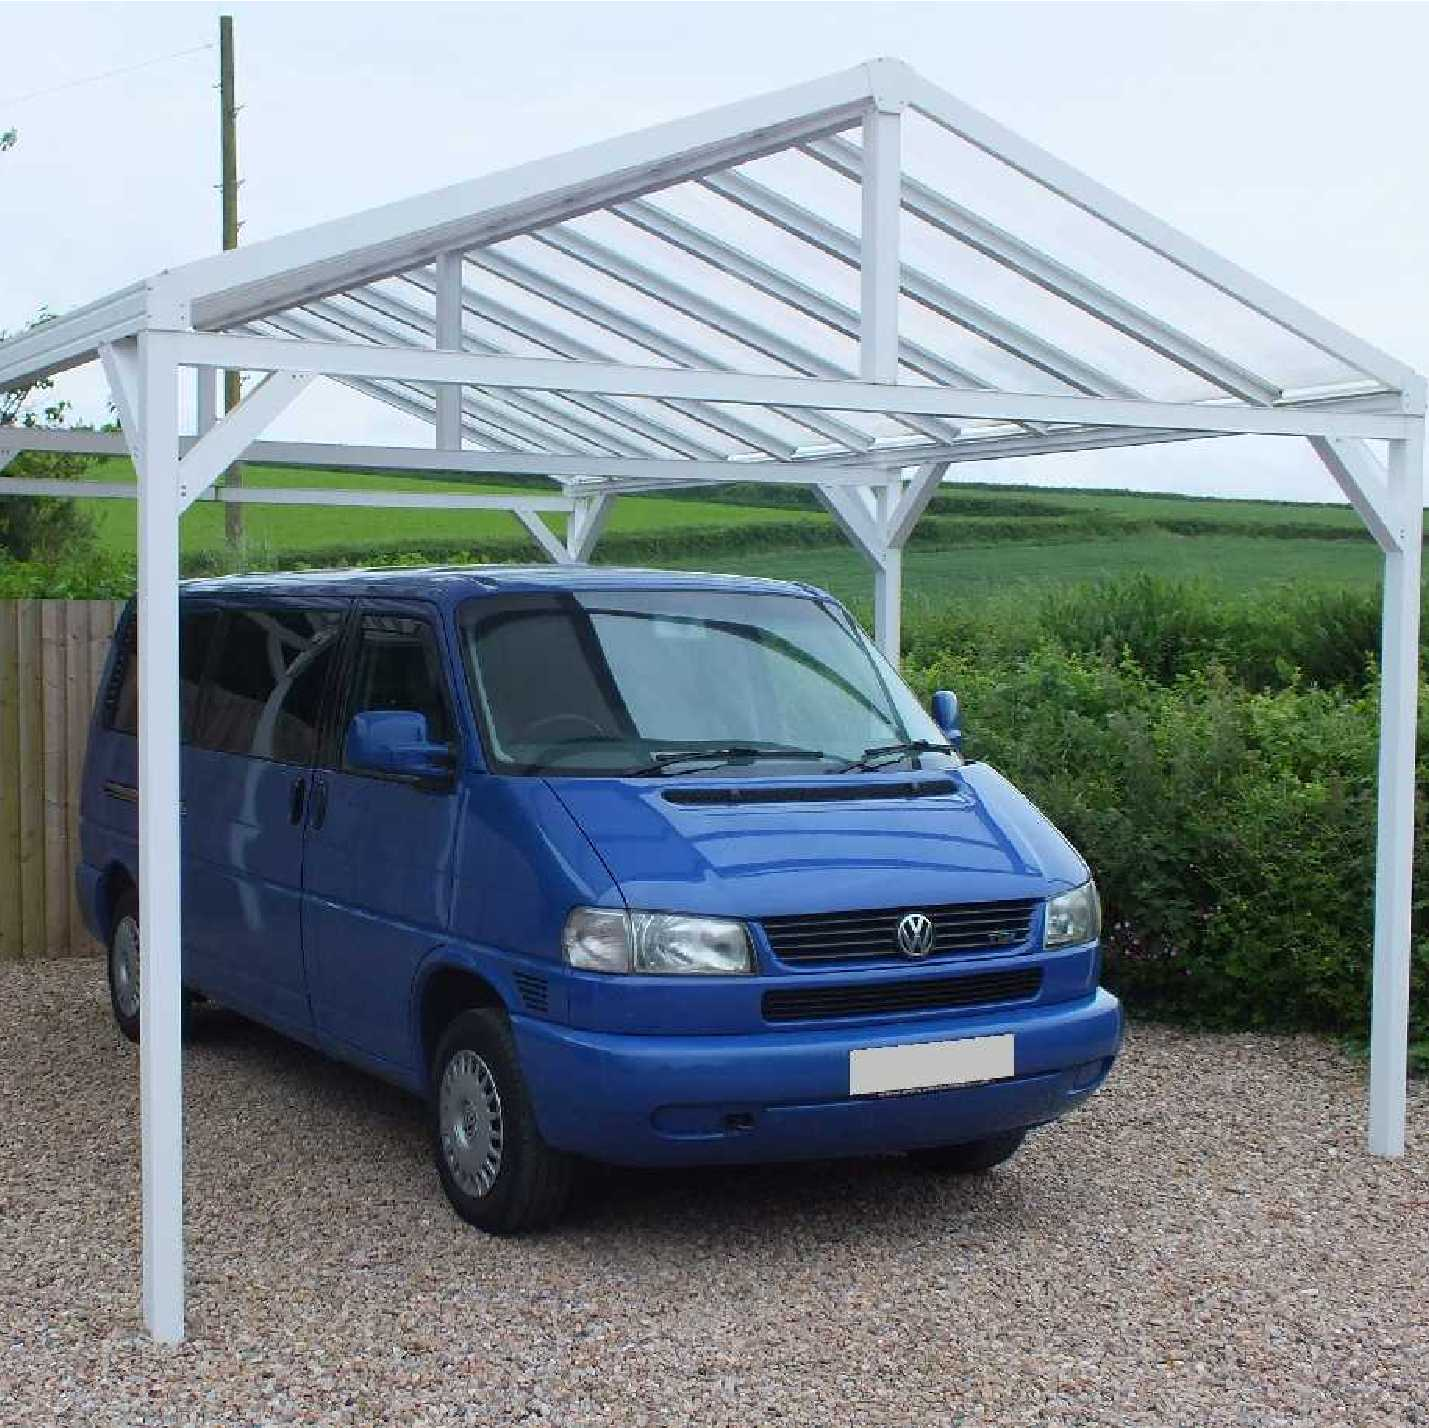 Omega Smart Free-Standing, Gable-Roof (type 1) Canopy with 16mm Polycarbonate Glazing - 6.3m (W) x 4.0m (P), (8) Supporting Posts